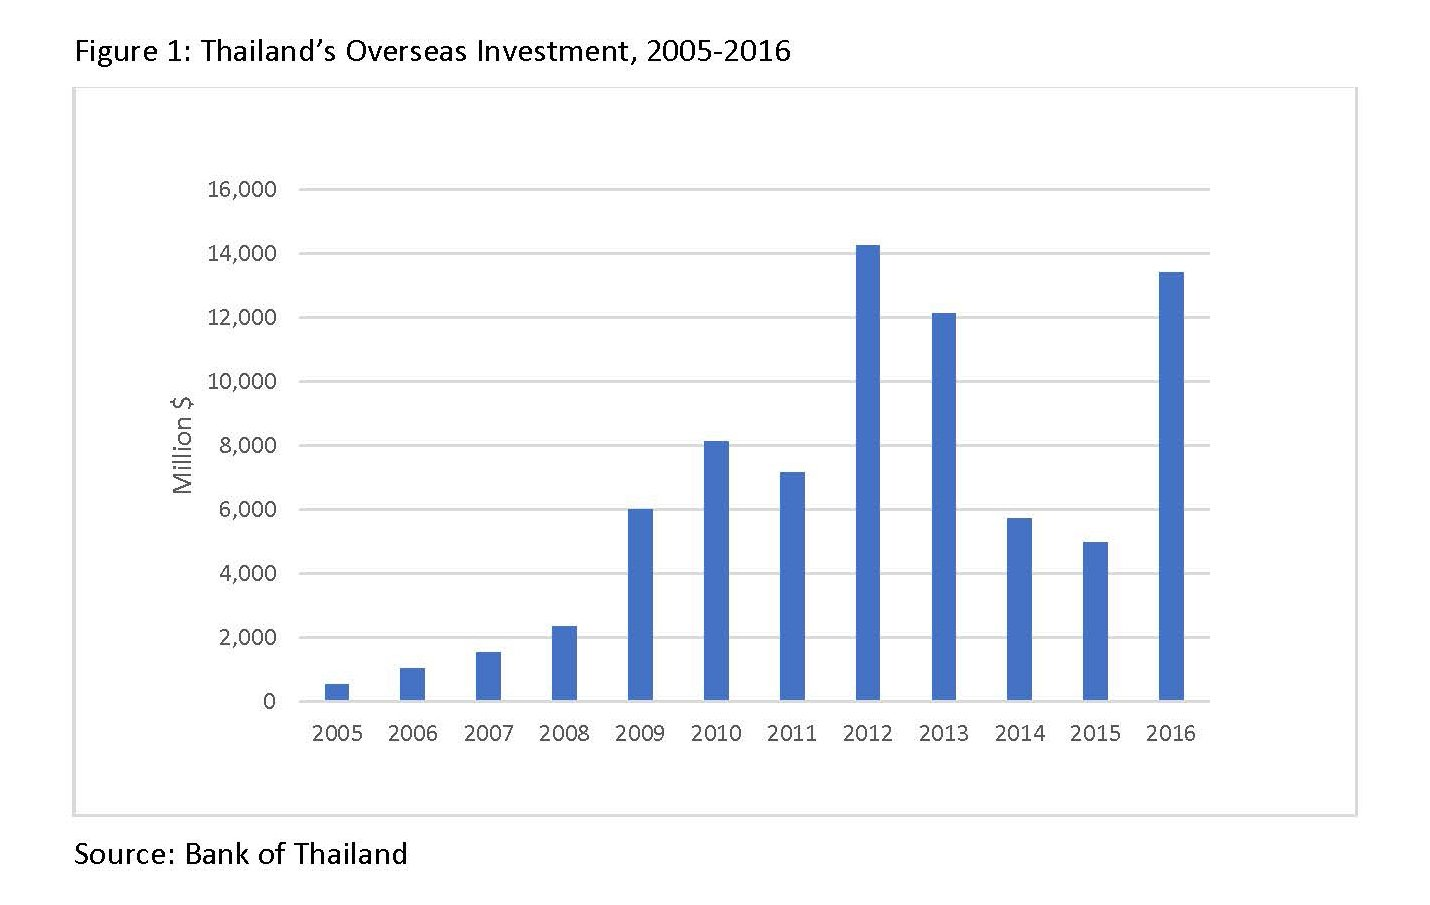 Growth In Thai Overseas Investment A Look At The Numbers Amcham 09 2012 Electrical Technology Basic Important Formulas For Thailand Developing Country Upper Middle Income Level It Is Economy To Move Up Development Ladder And Become